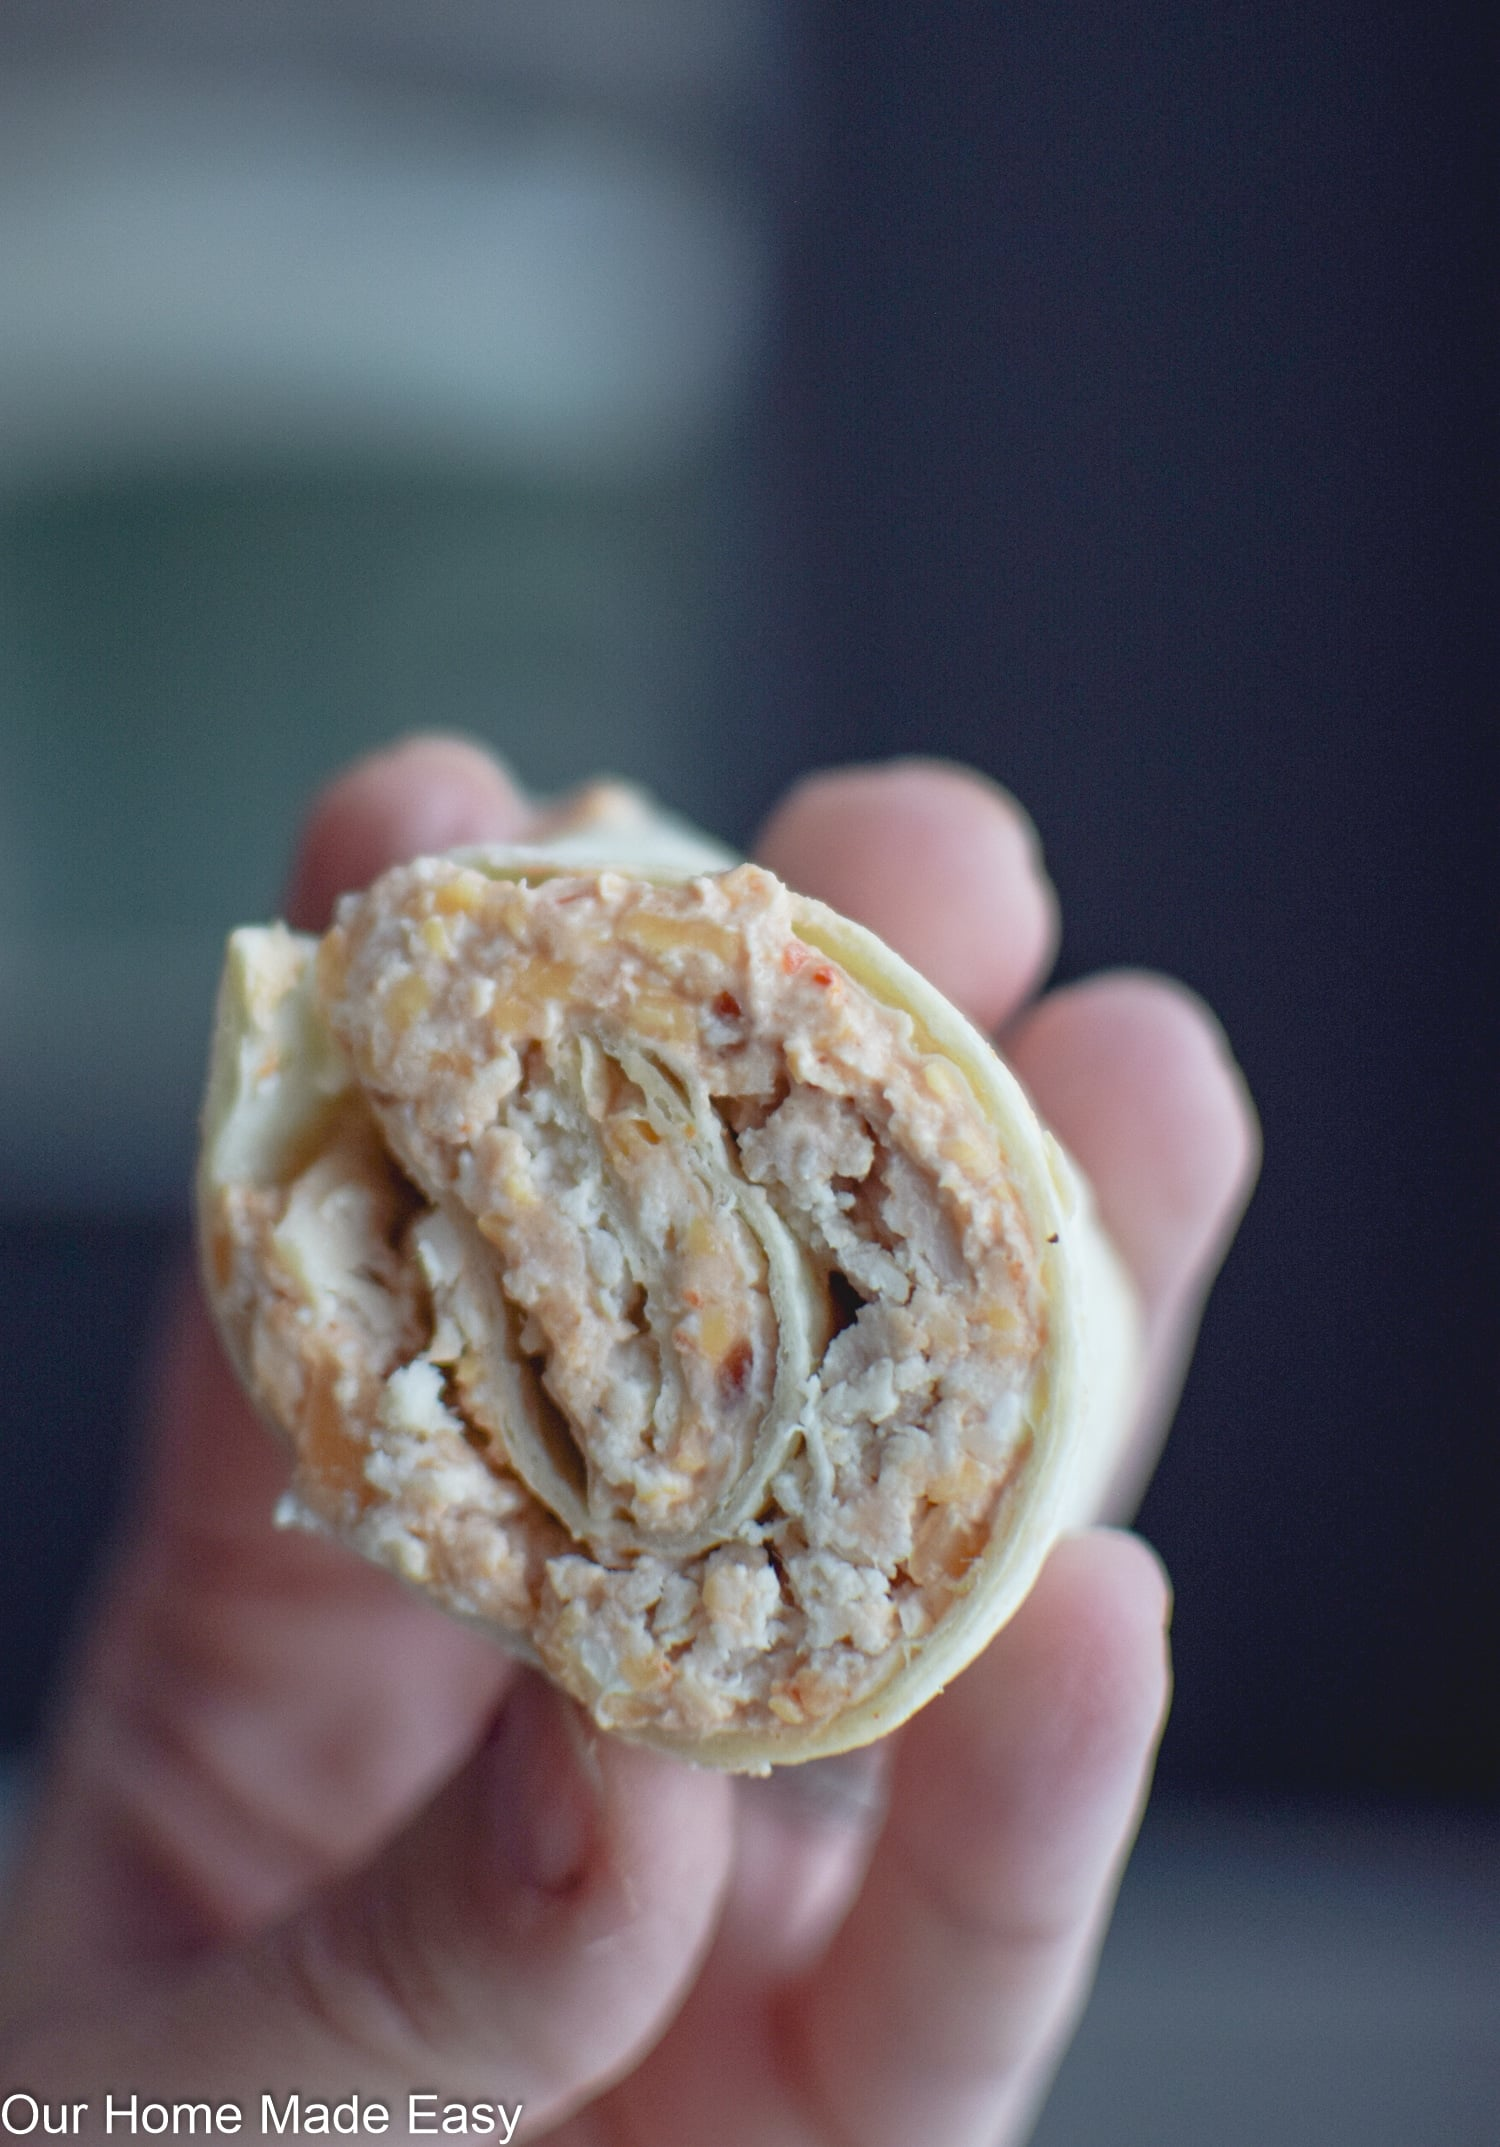 Chicken tortilla roll ups take just a few minutes to make and are perfect for an on-the-go snack or lunch